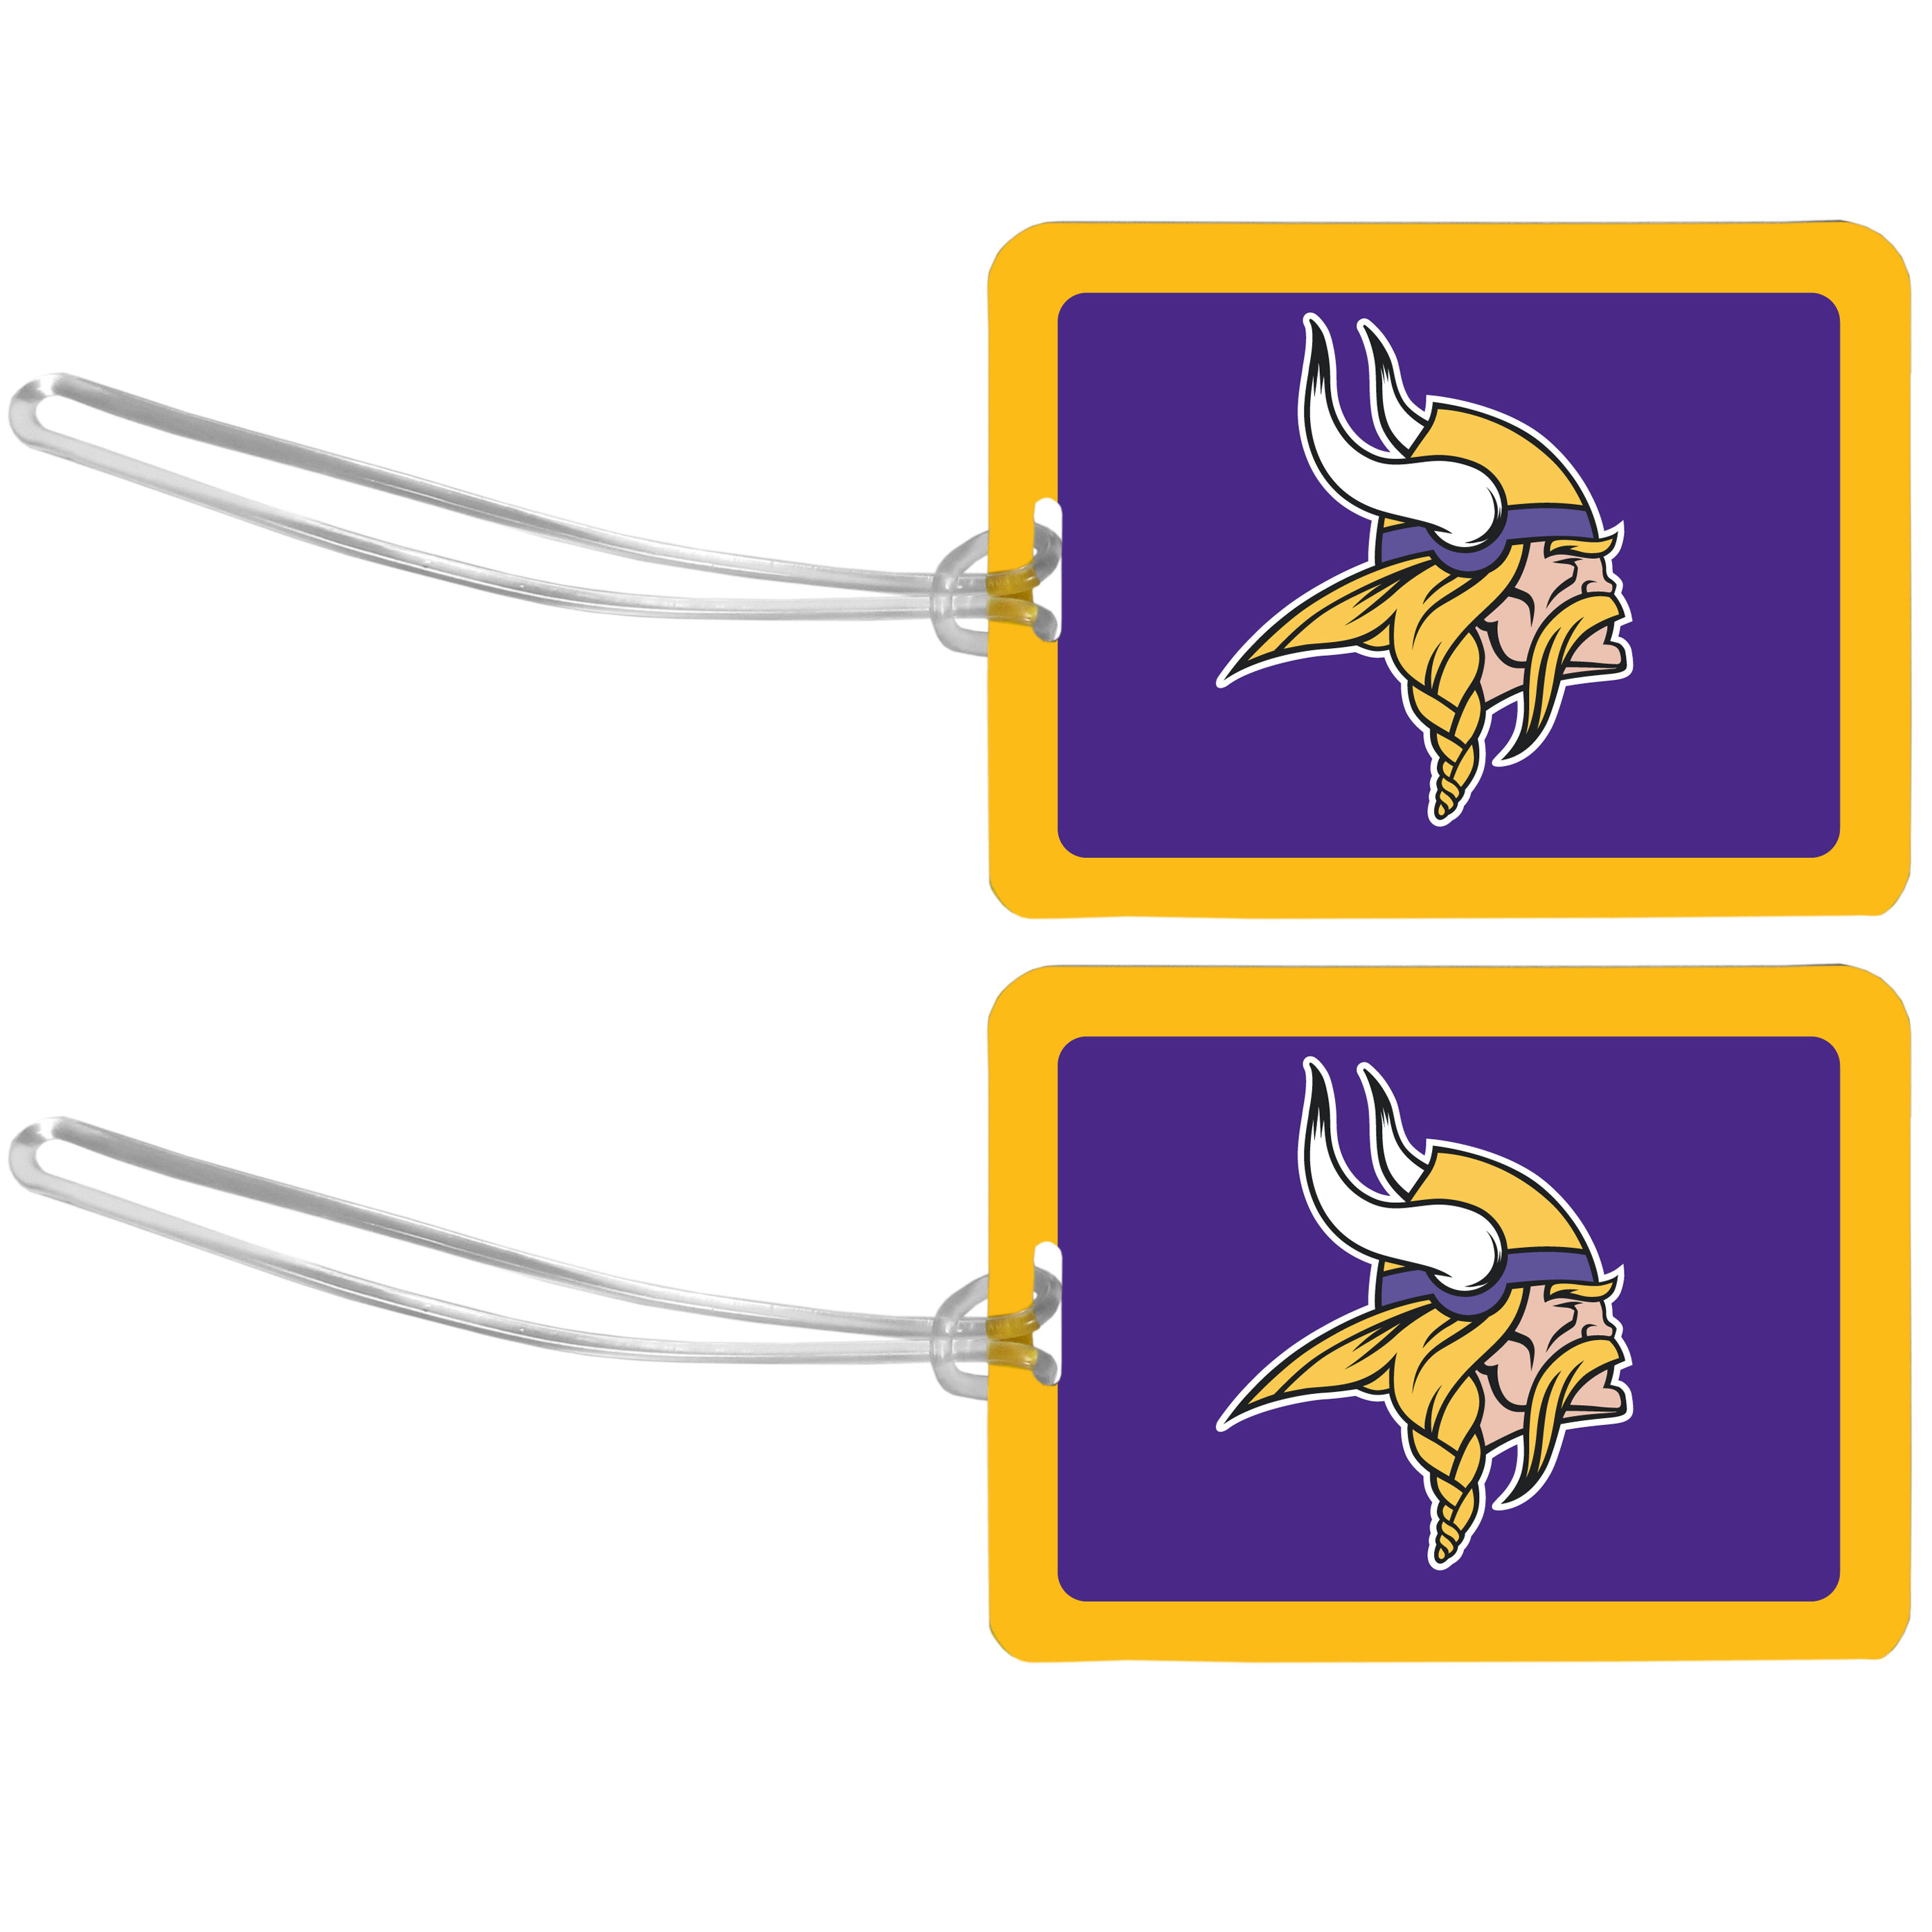 Minnesota Vikings Vinyl Luggage Tag, 2pk - Tired of trying to spot your suitcase or bag in a sea of luggage? Try our large and colorful Minnesota Vikings luggage tags. The tag is 4x3 inches and has a 5 inch cord to attach it easily to your bags, backpacks or luggage. The front of the tag features the team logo in a bright, team colored background and you can write you name, address and phone number on the back of the tag.